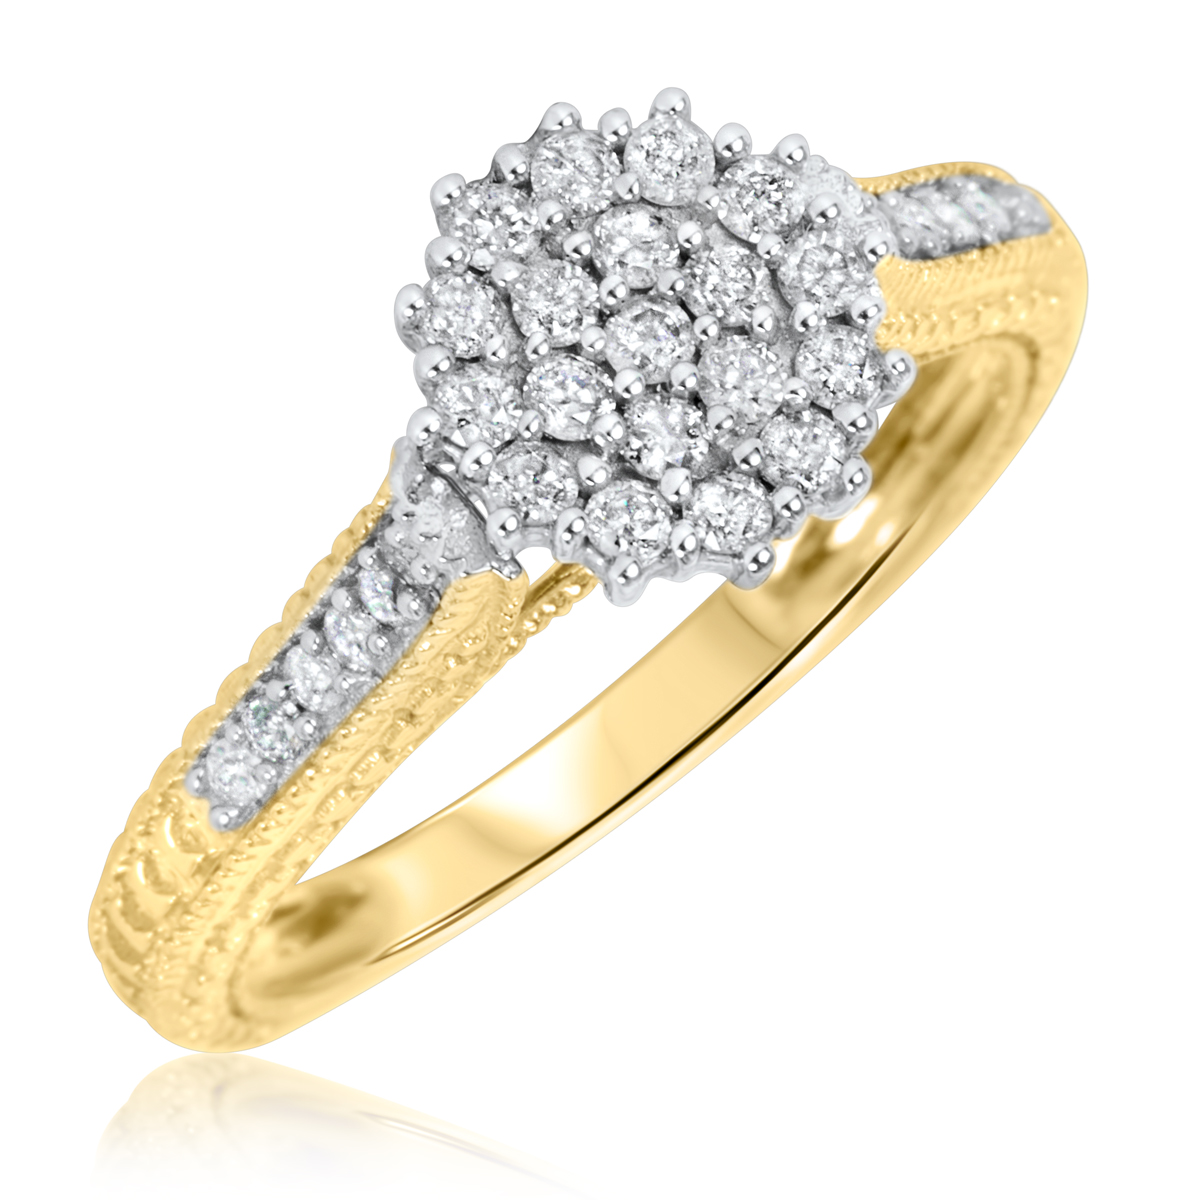 3 4 carat bridal wedding ring set 10k yellow gold